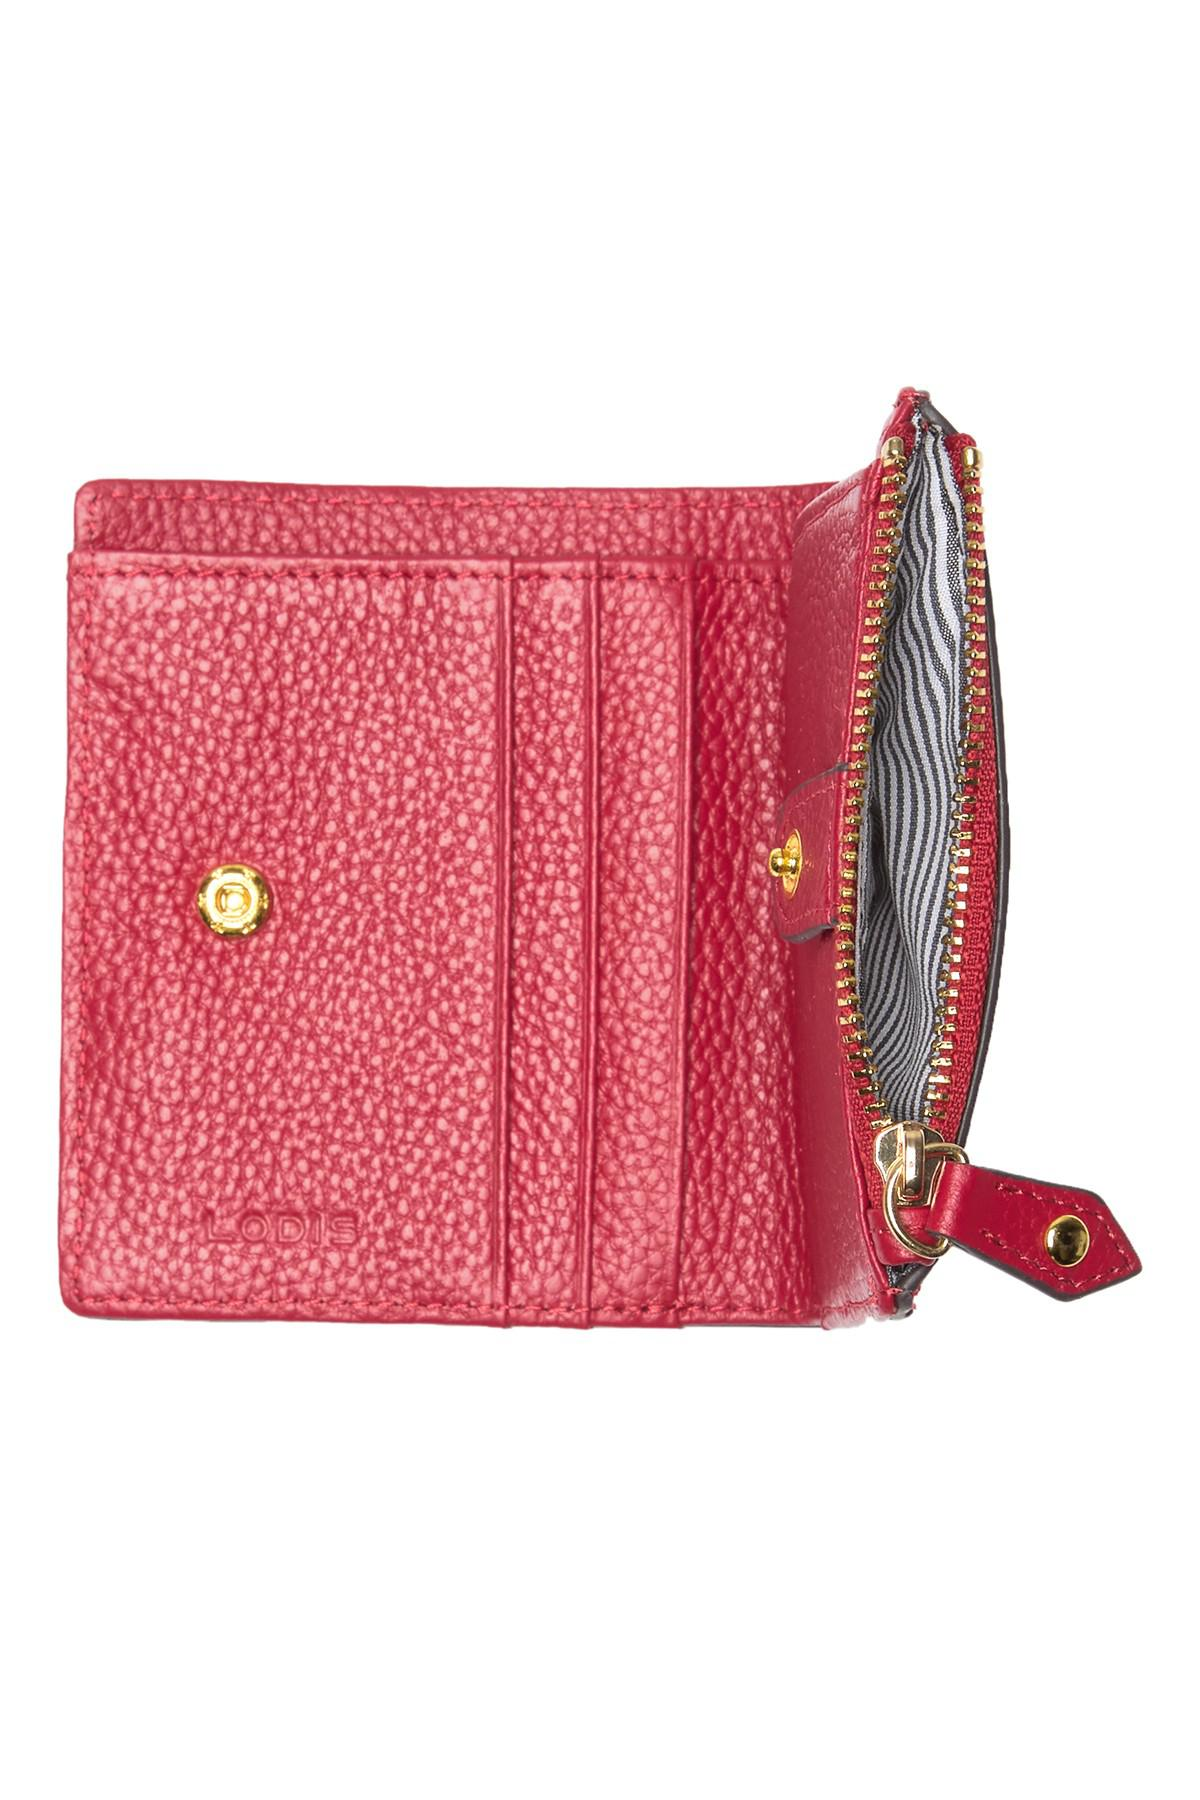 c2106d6eda Lodis Colleen French Leather Wallet in Red - Lyst